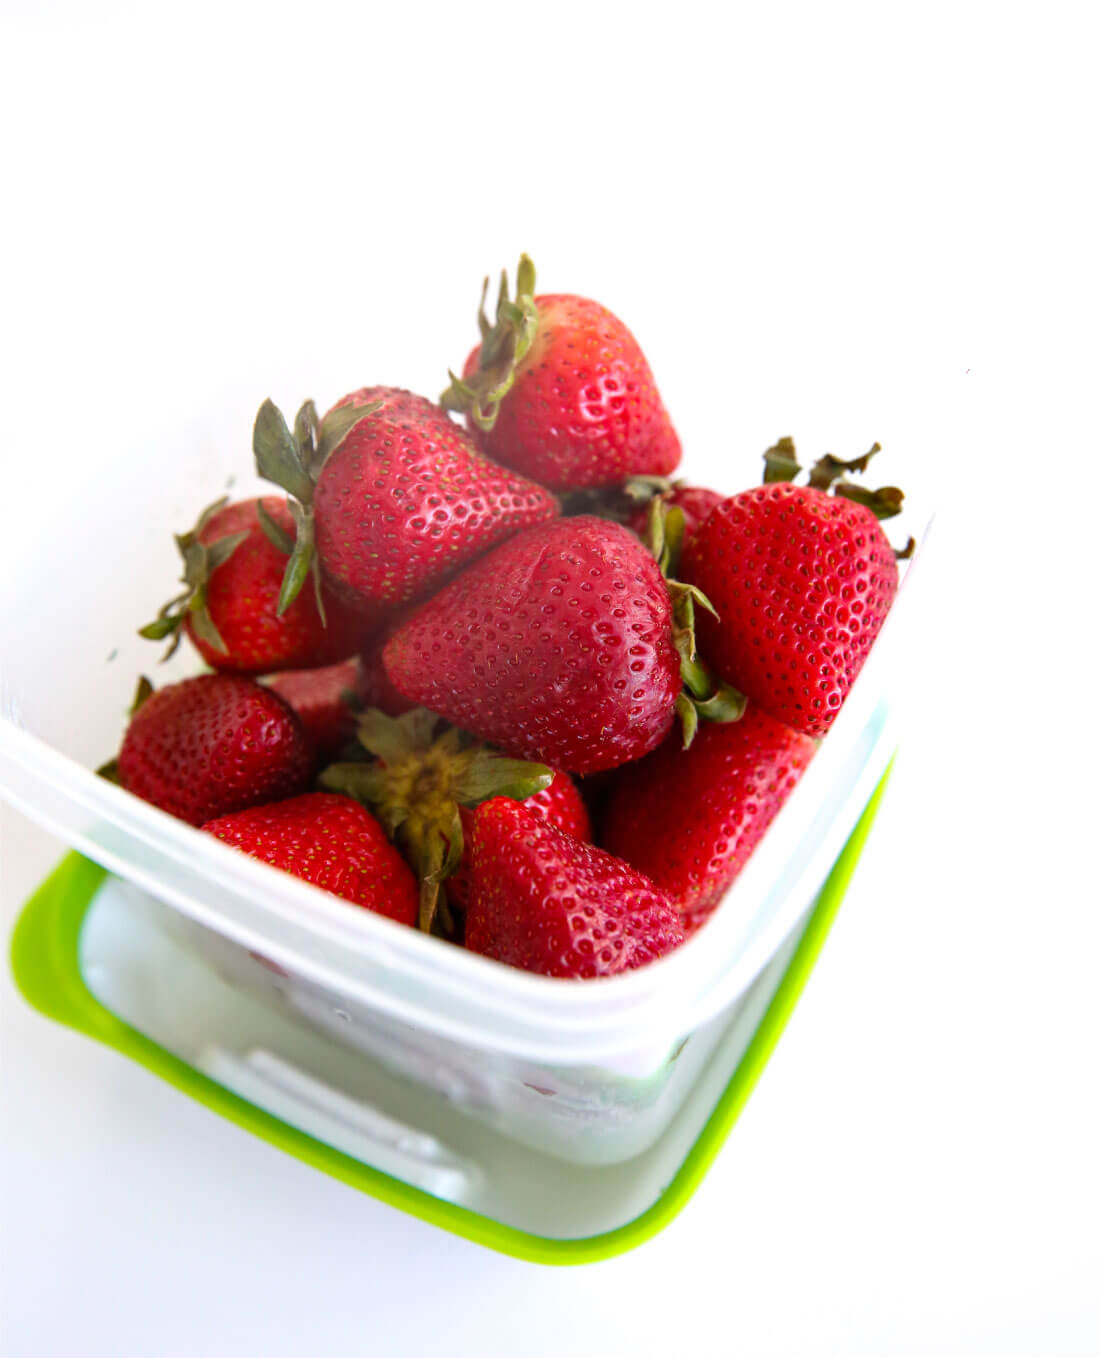 Use the new Rubbermaid FreshWorks ™ Produce Saver to help keep your produce fresher, longer! The strawberries after a week.